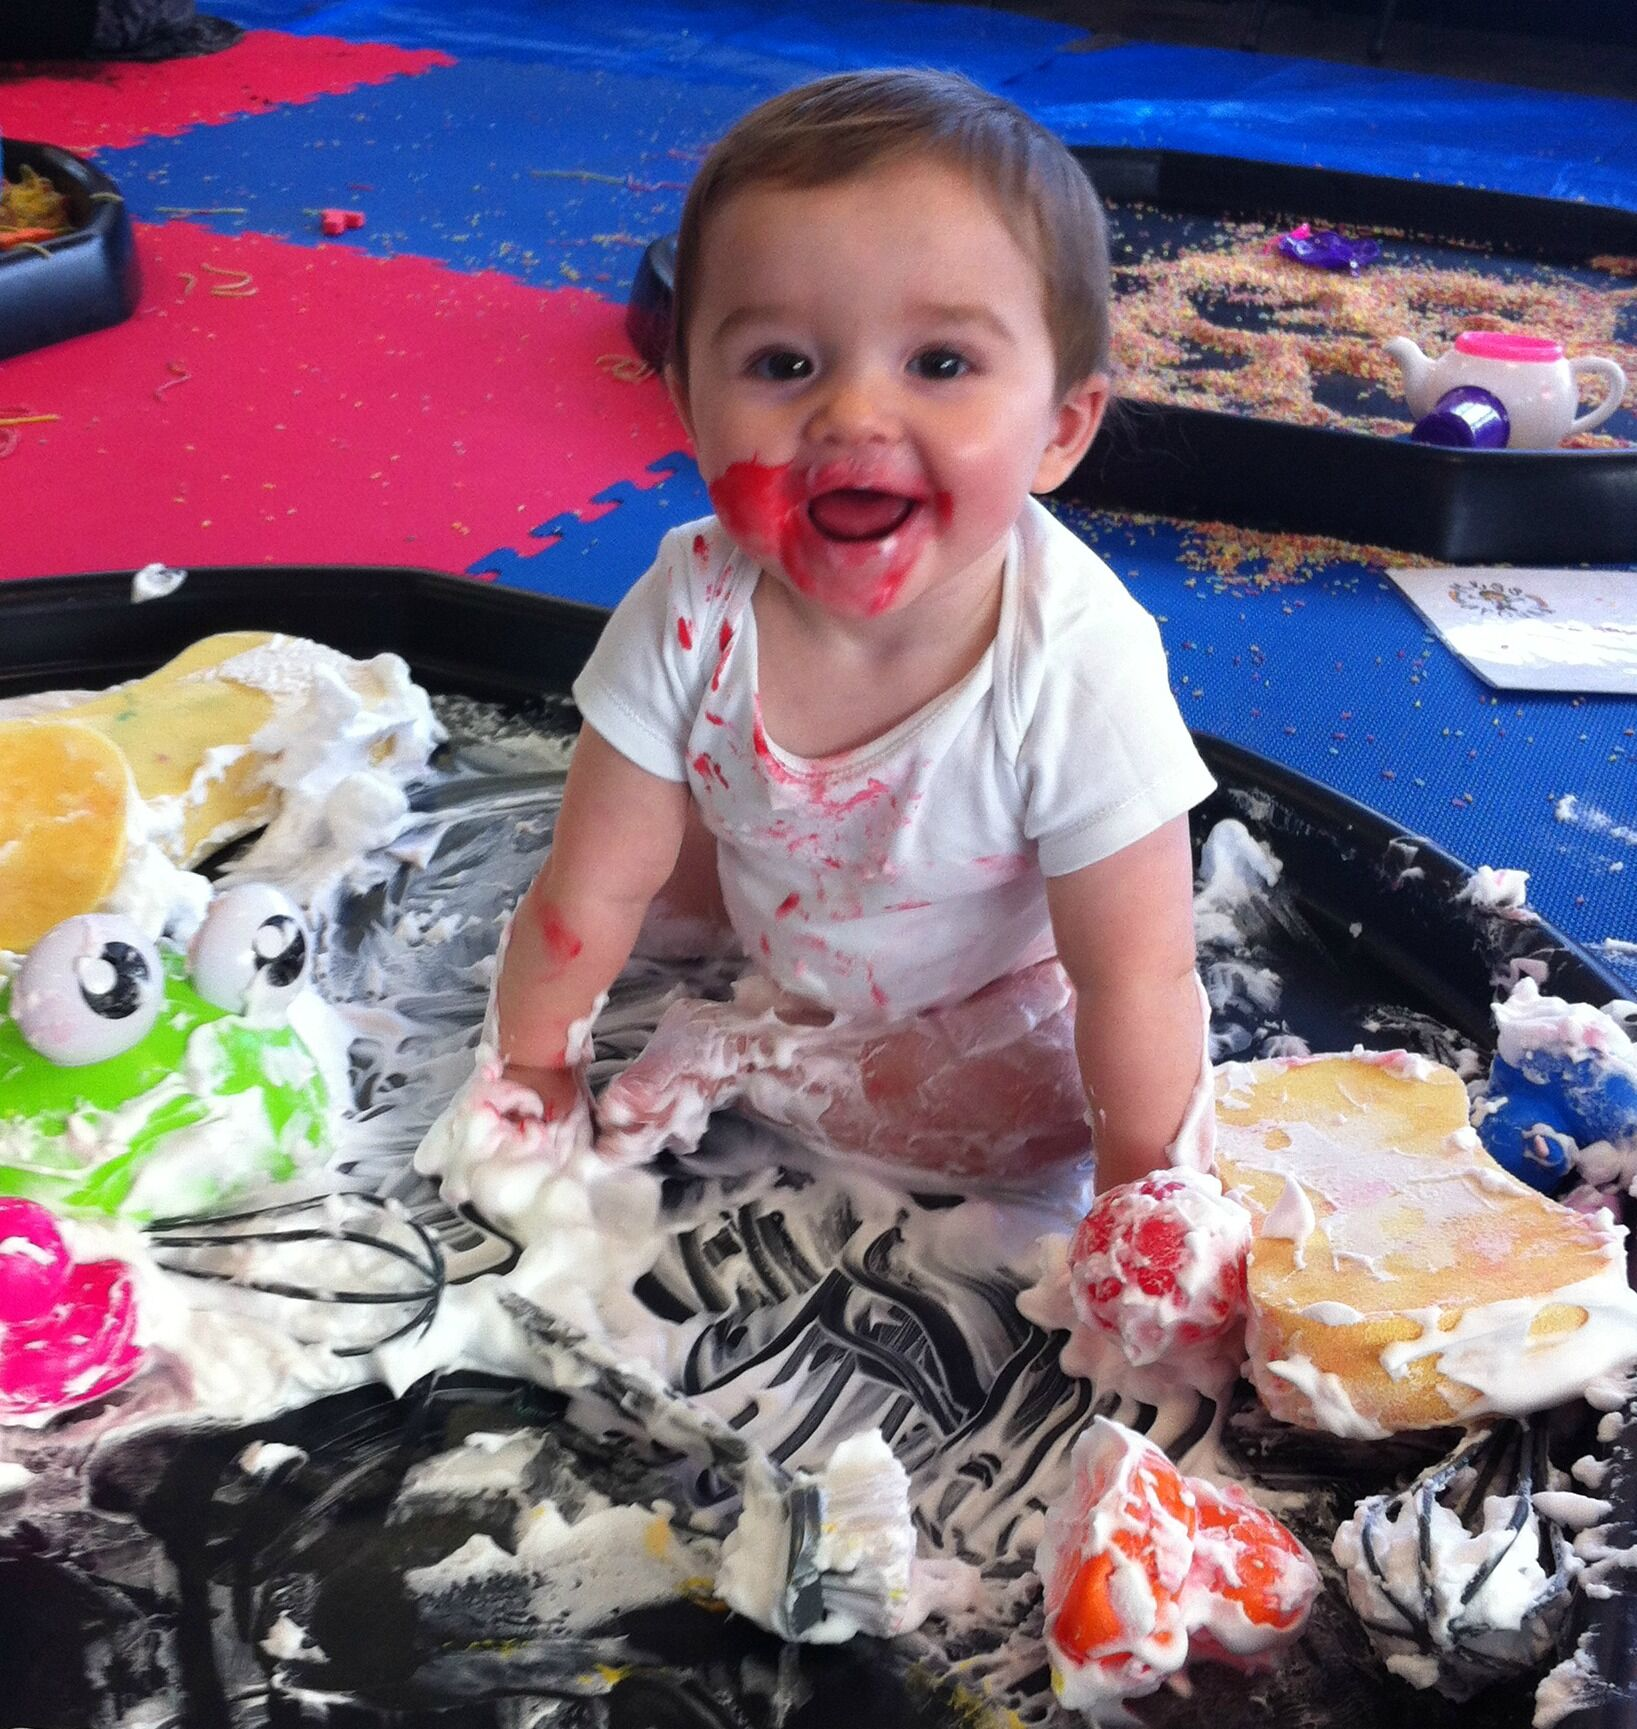 Messy Playroom: Fun Messy Play For Babies & Toddlers